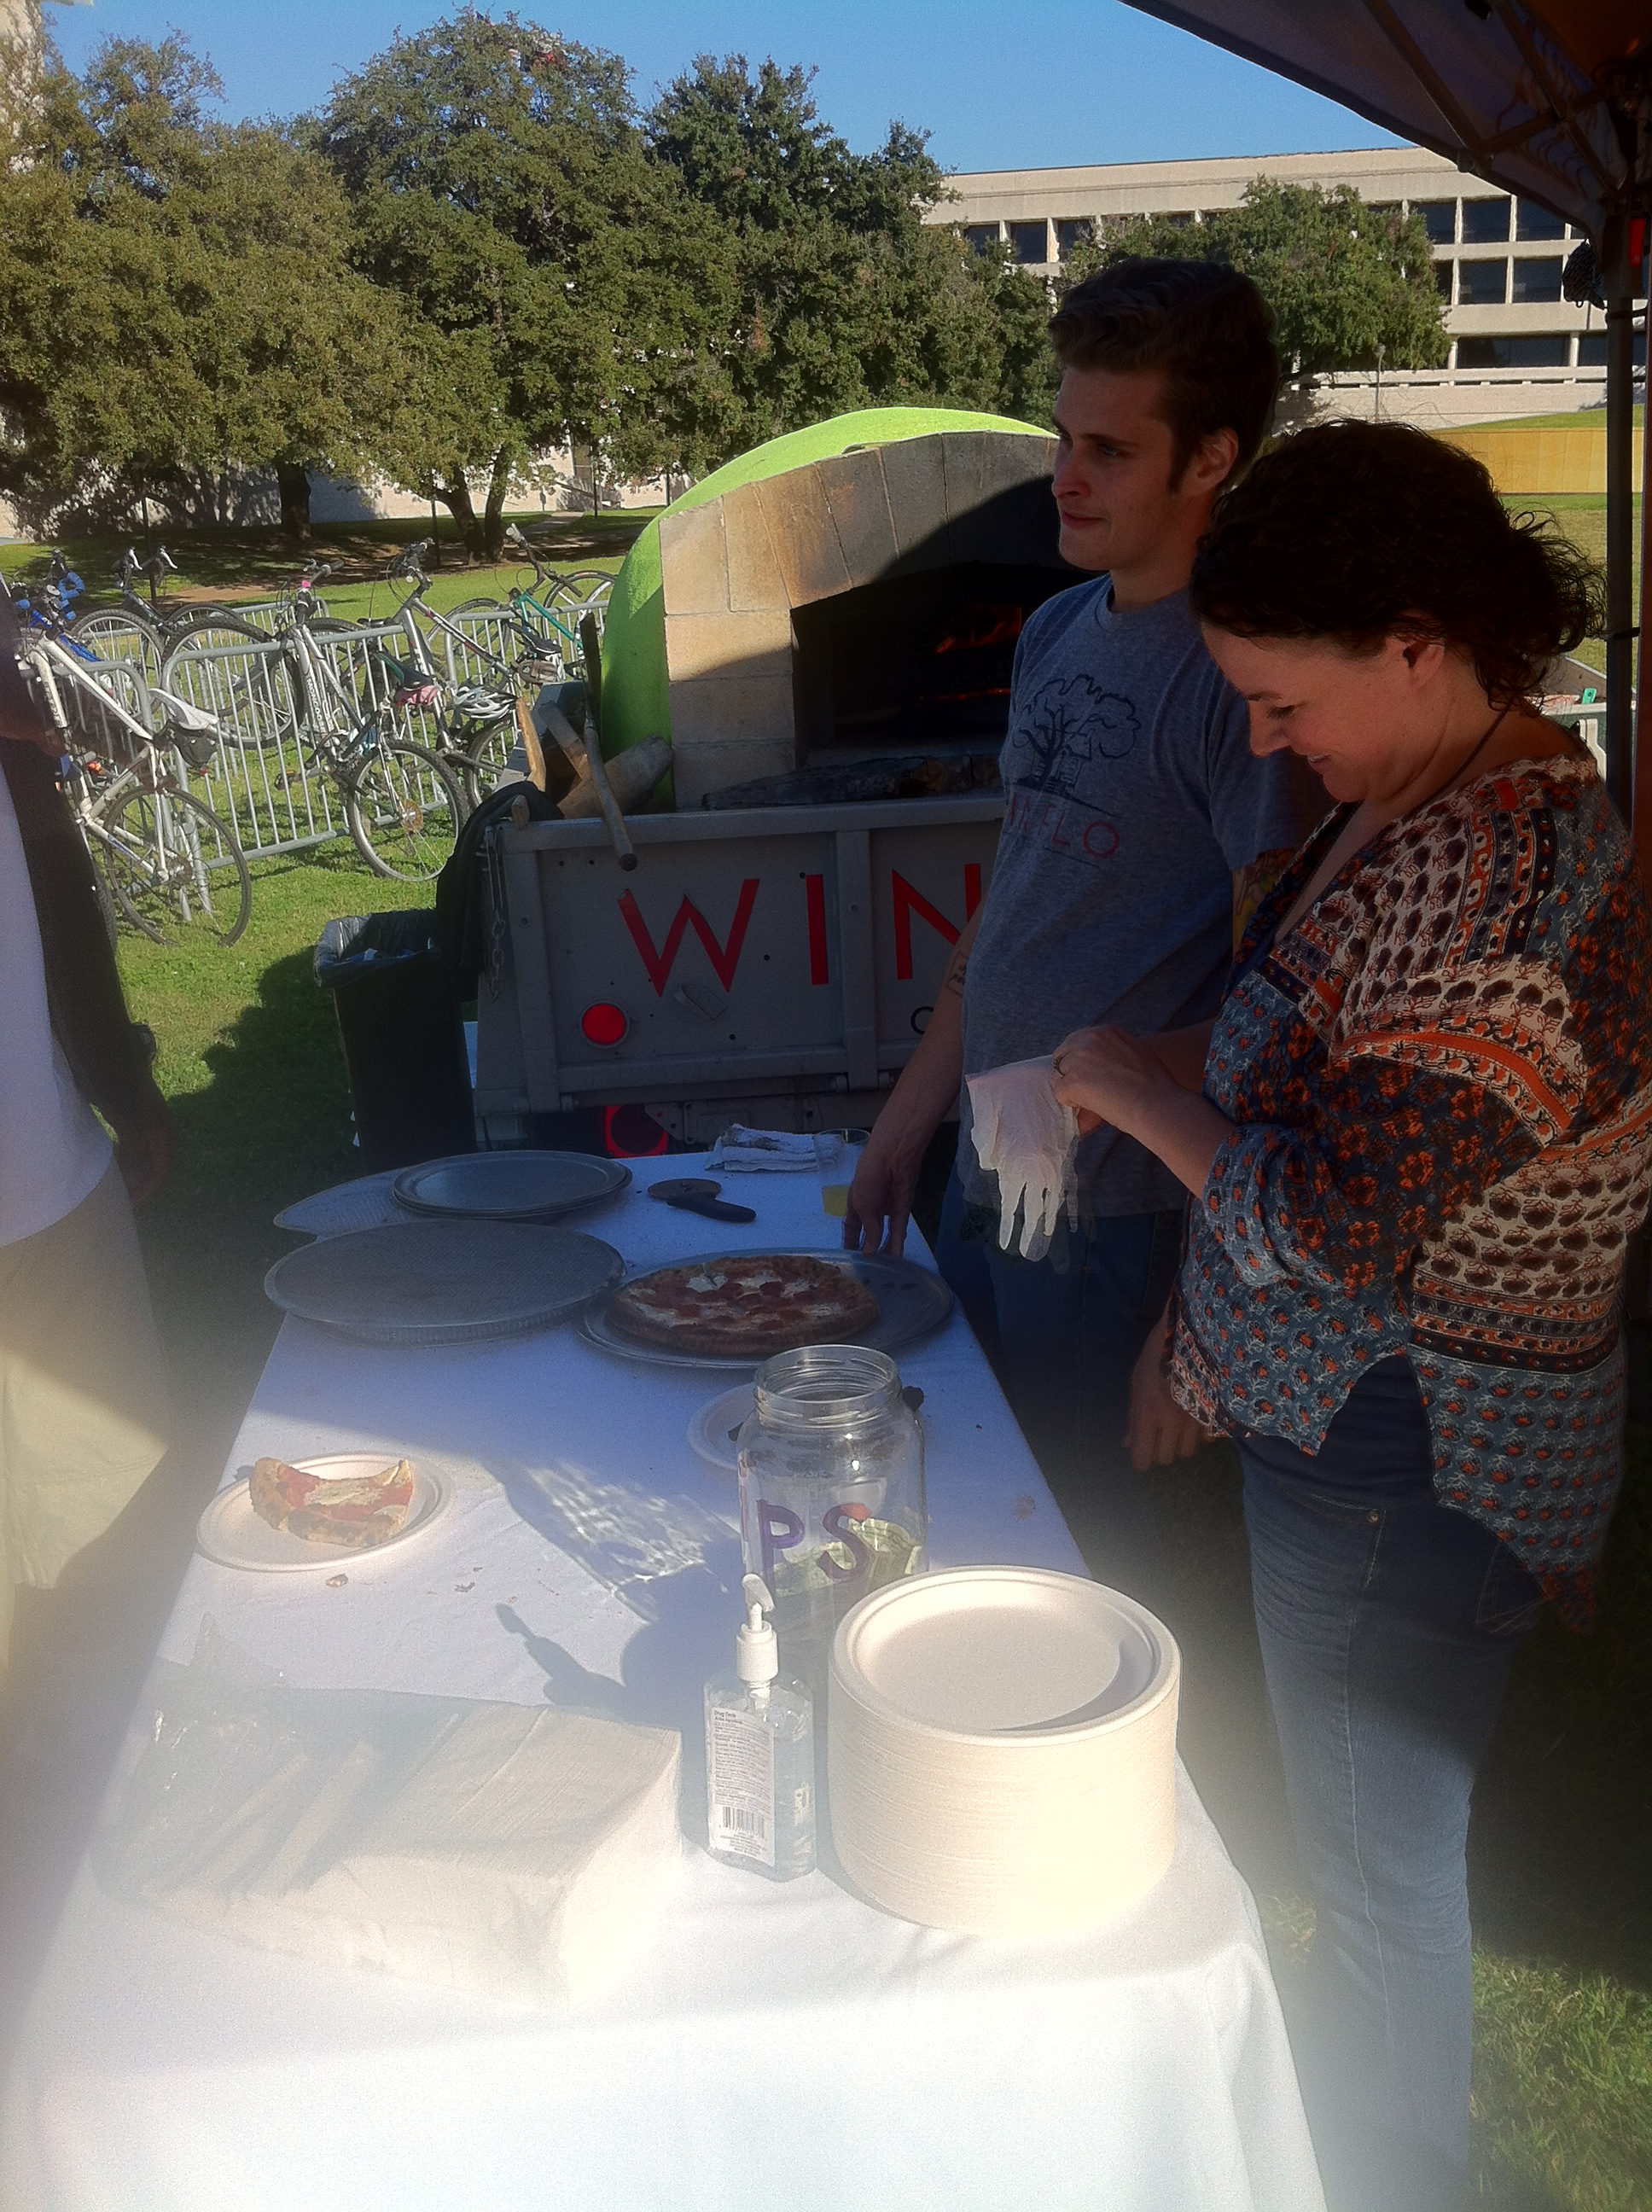 Free food and good times are all but guaranteed while tailgating.  Tailgates can be hosted by friends or large corporations.